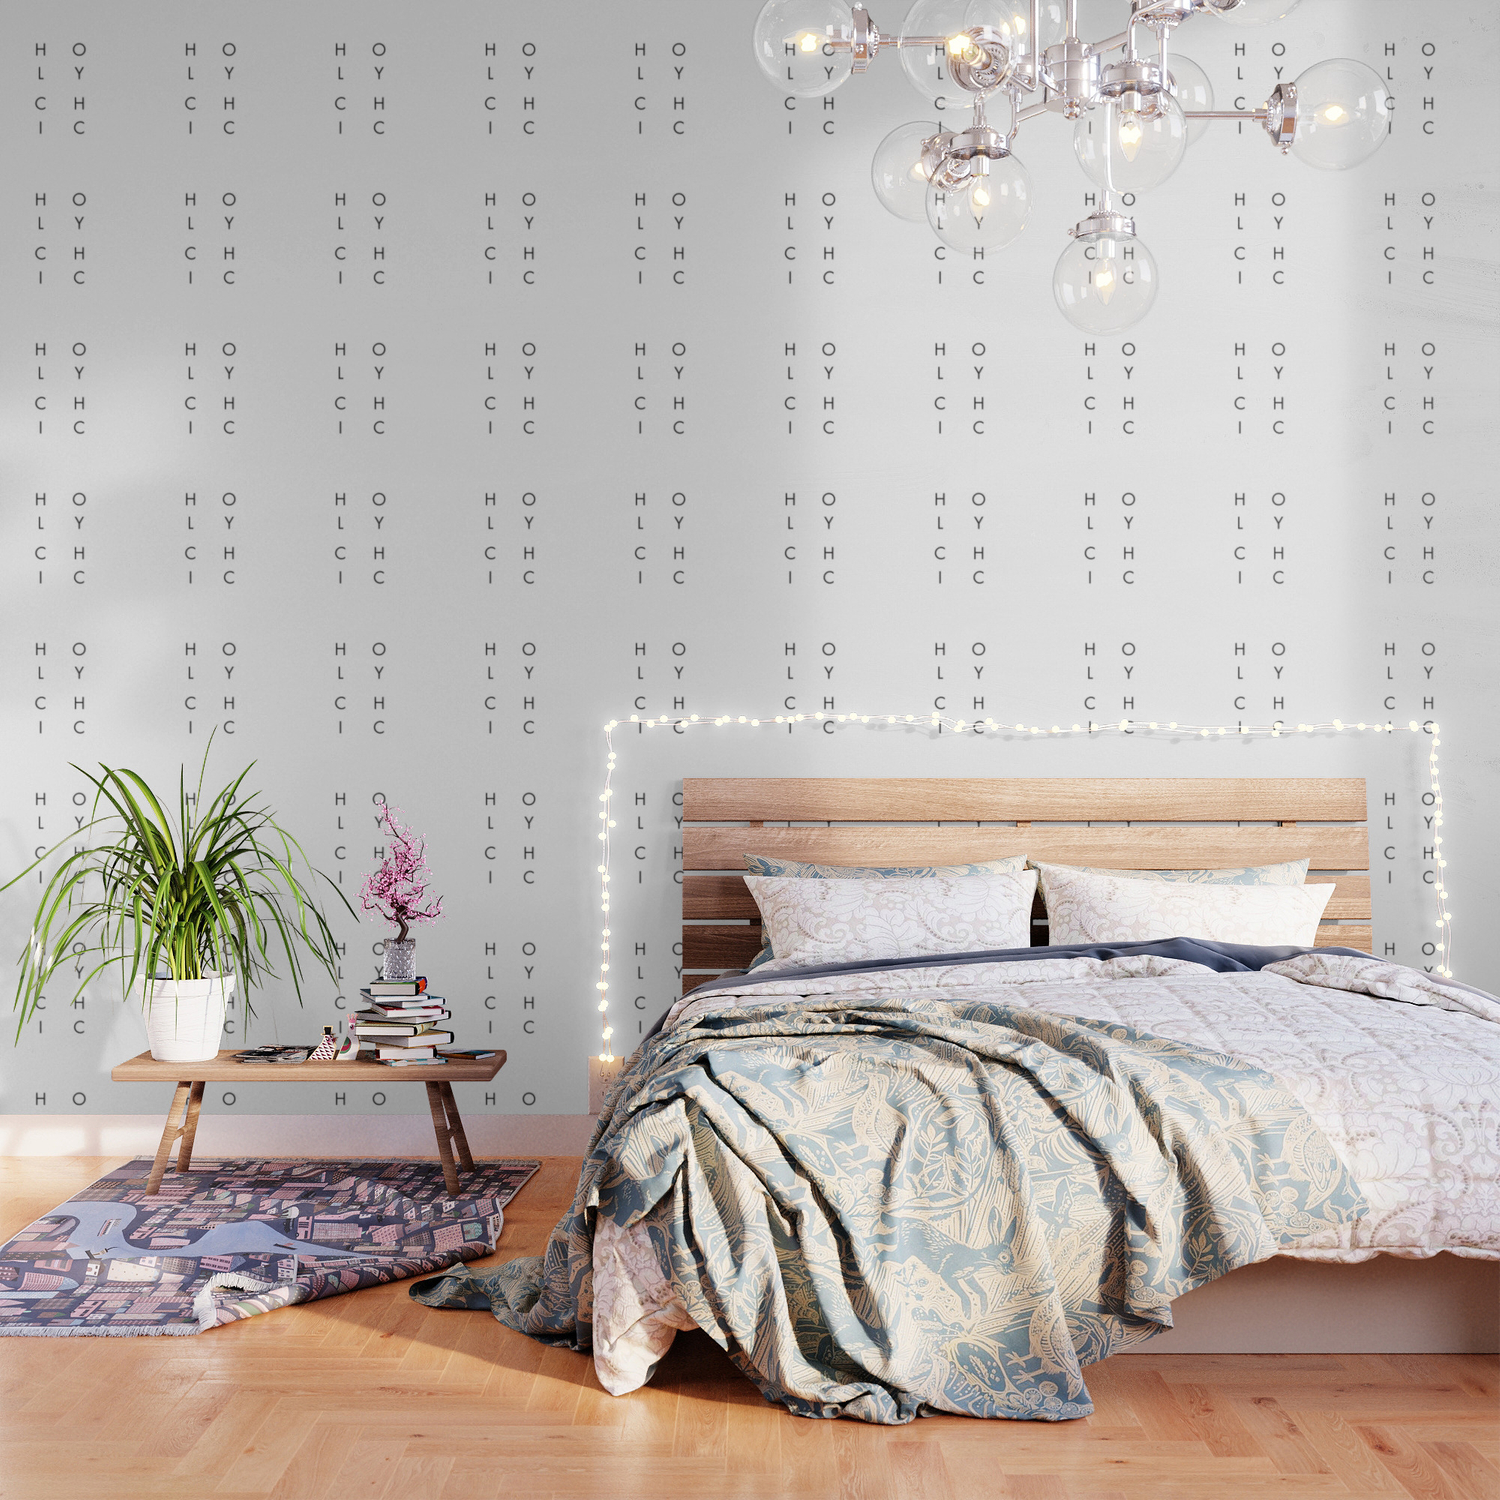 Holy Chic Bedroom Decor Dorm